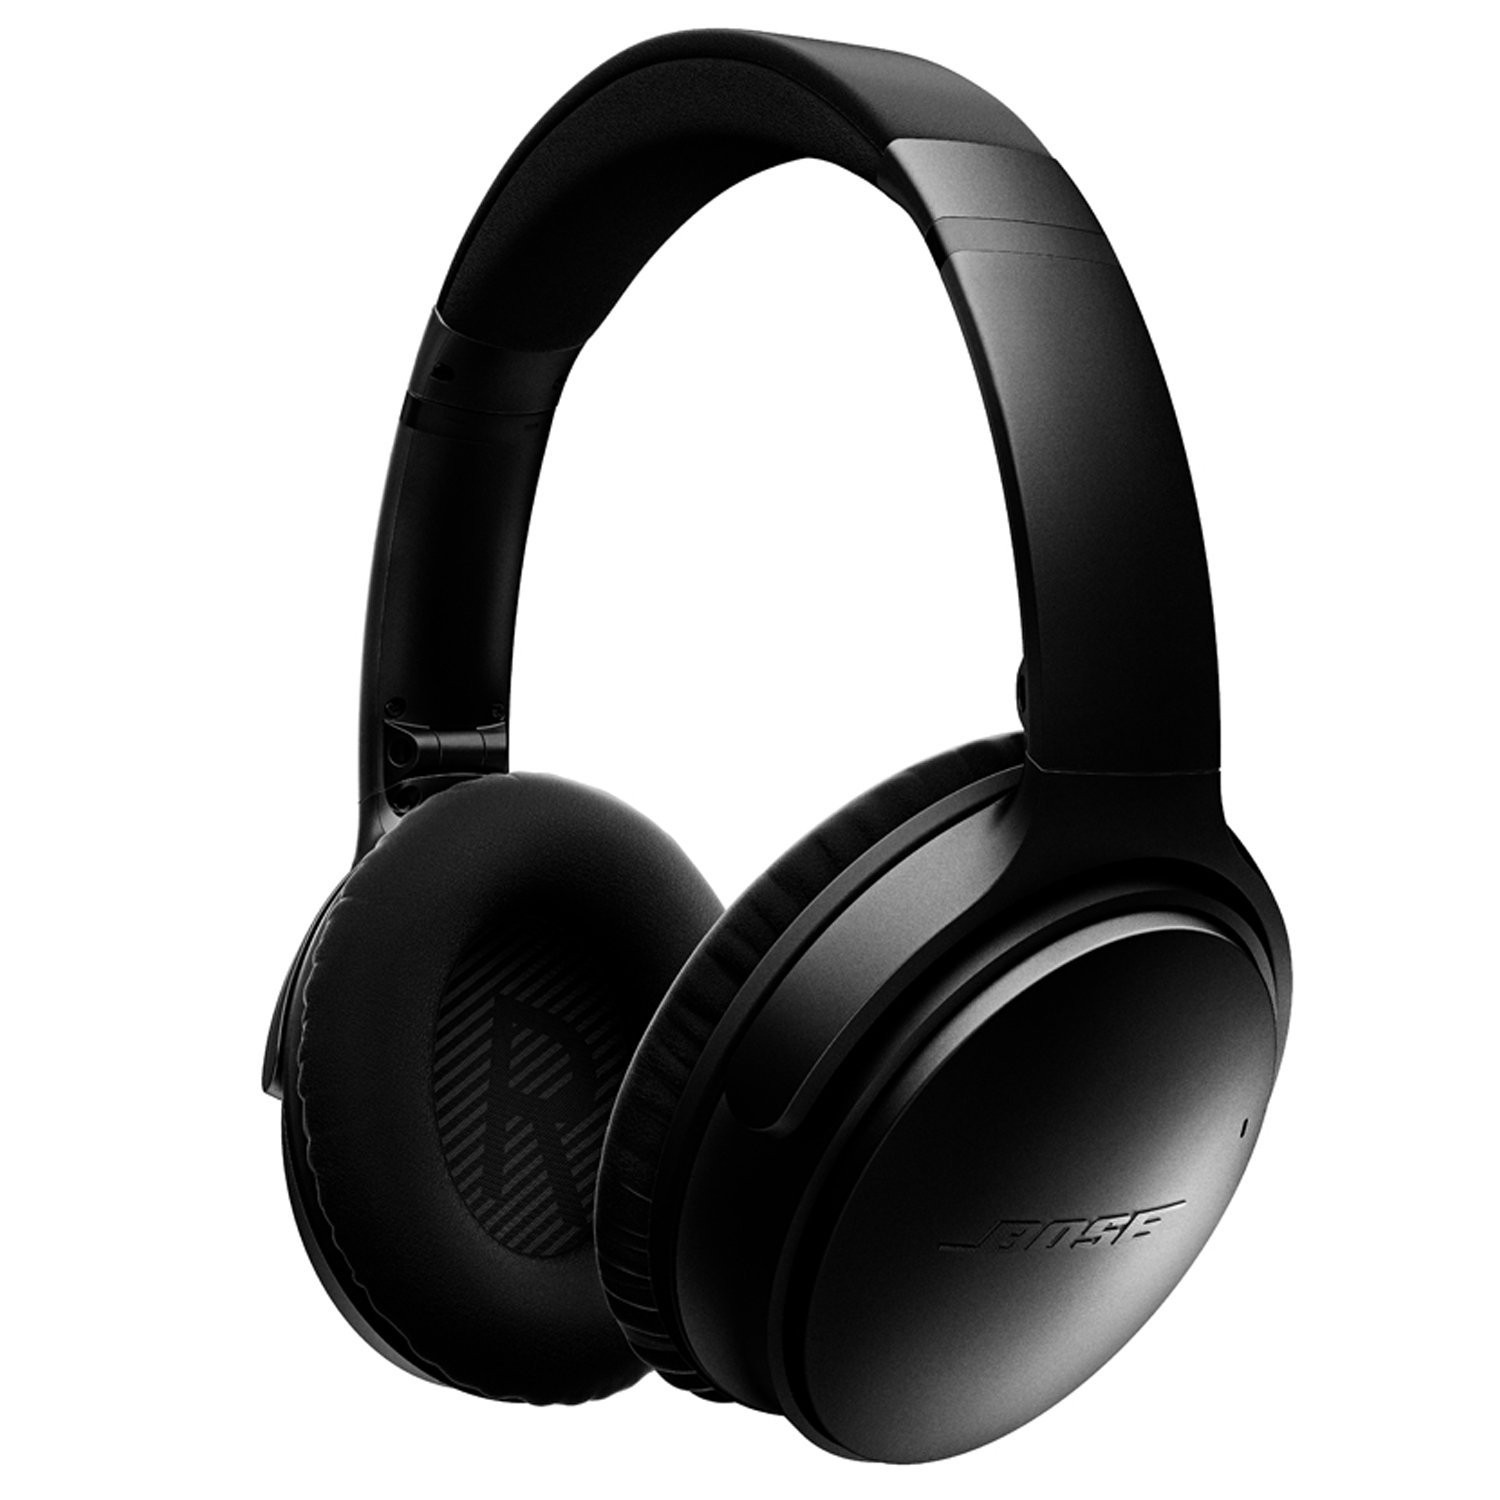 BOSE-Comfort-35 Wireless Headphones (Black)